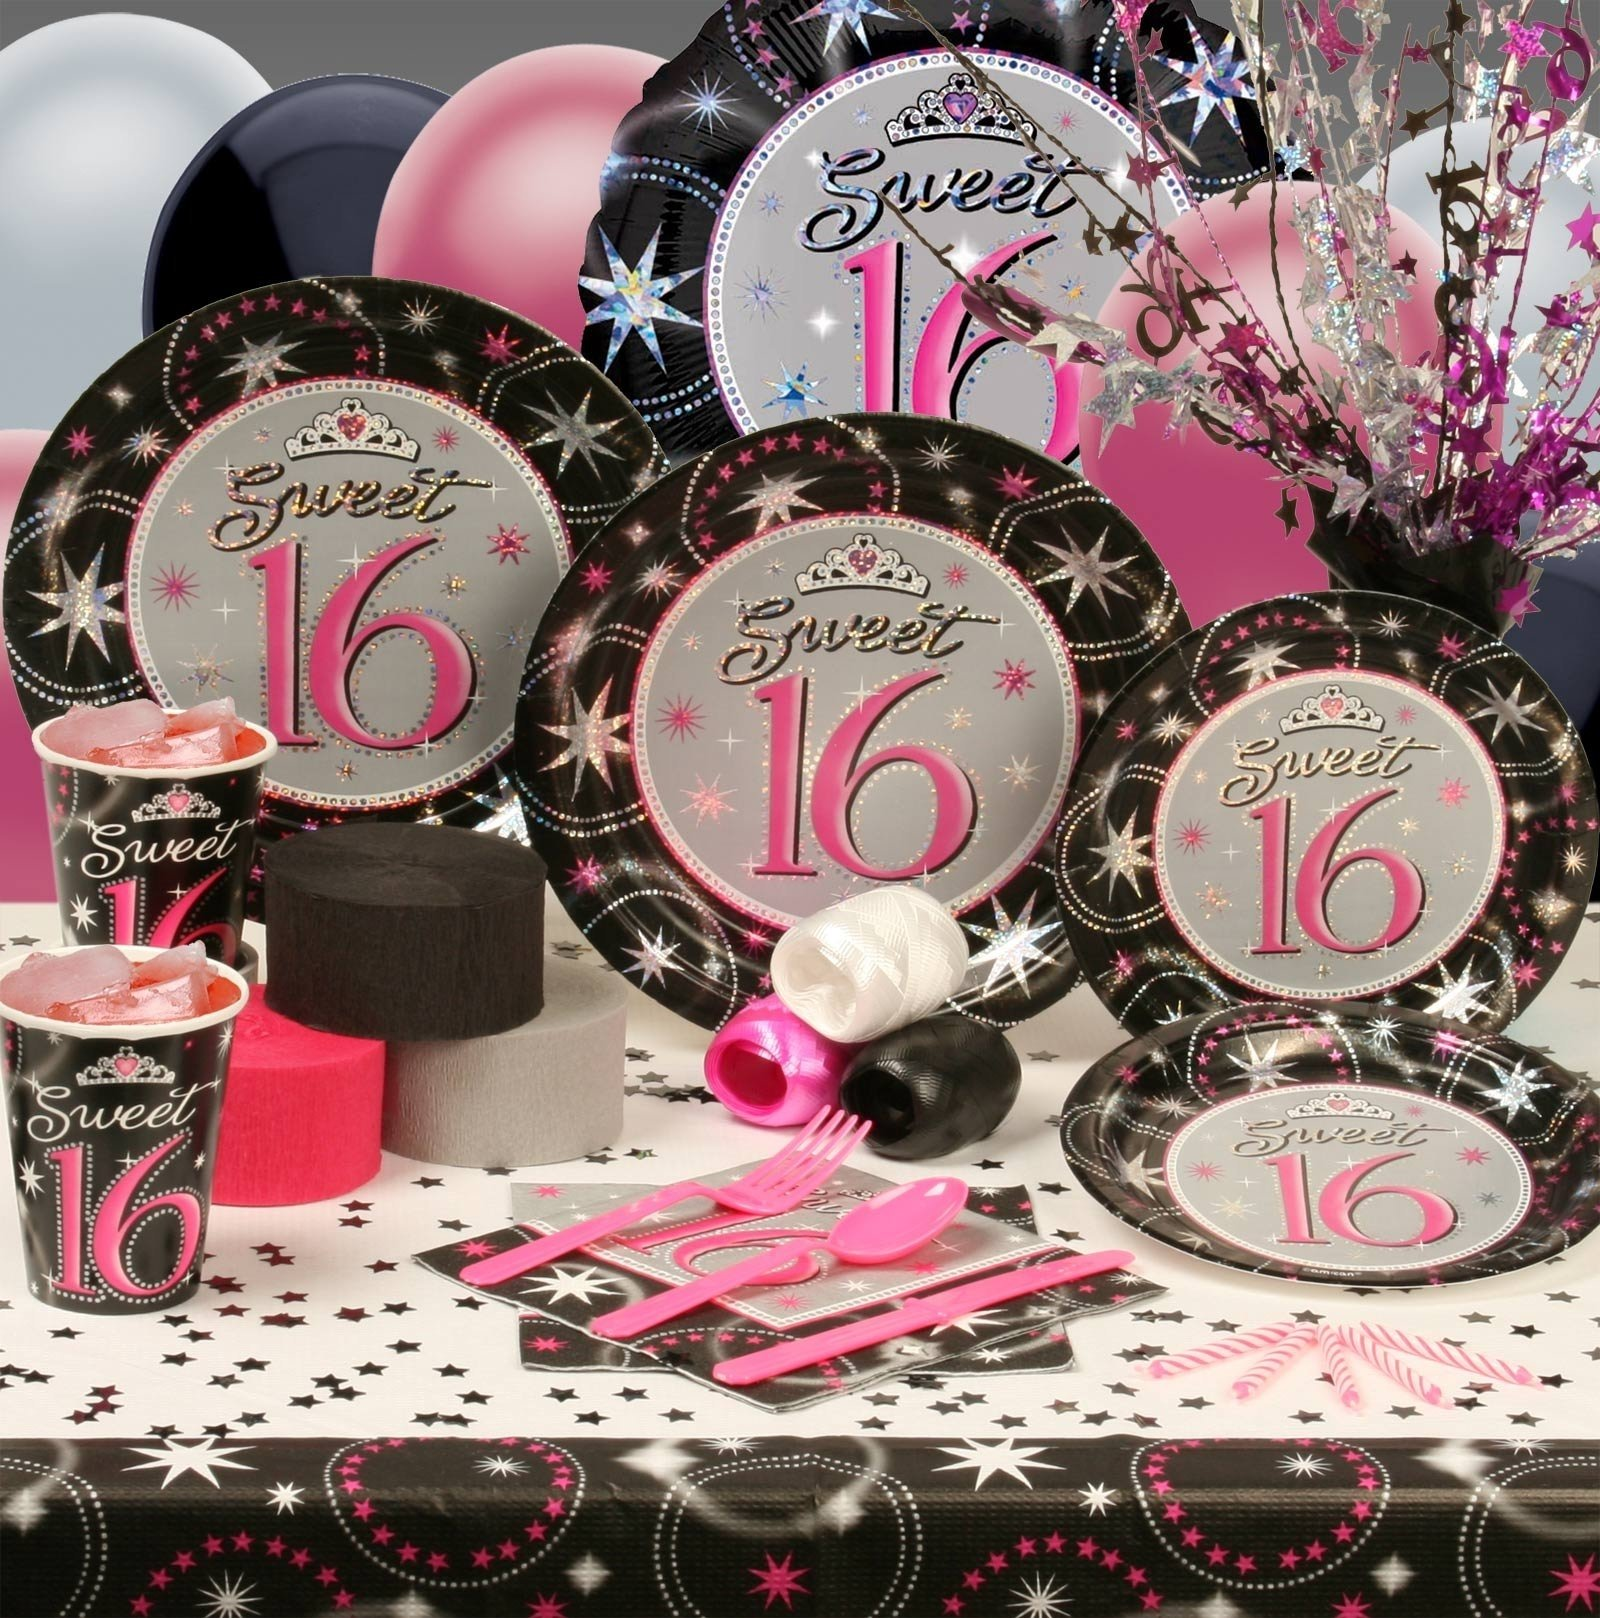 10 Fantastic Sweet 16 Limo Party Ideas pinsharon mancuso meade on haleys sweet sixteen party 2021